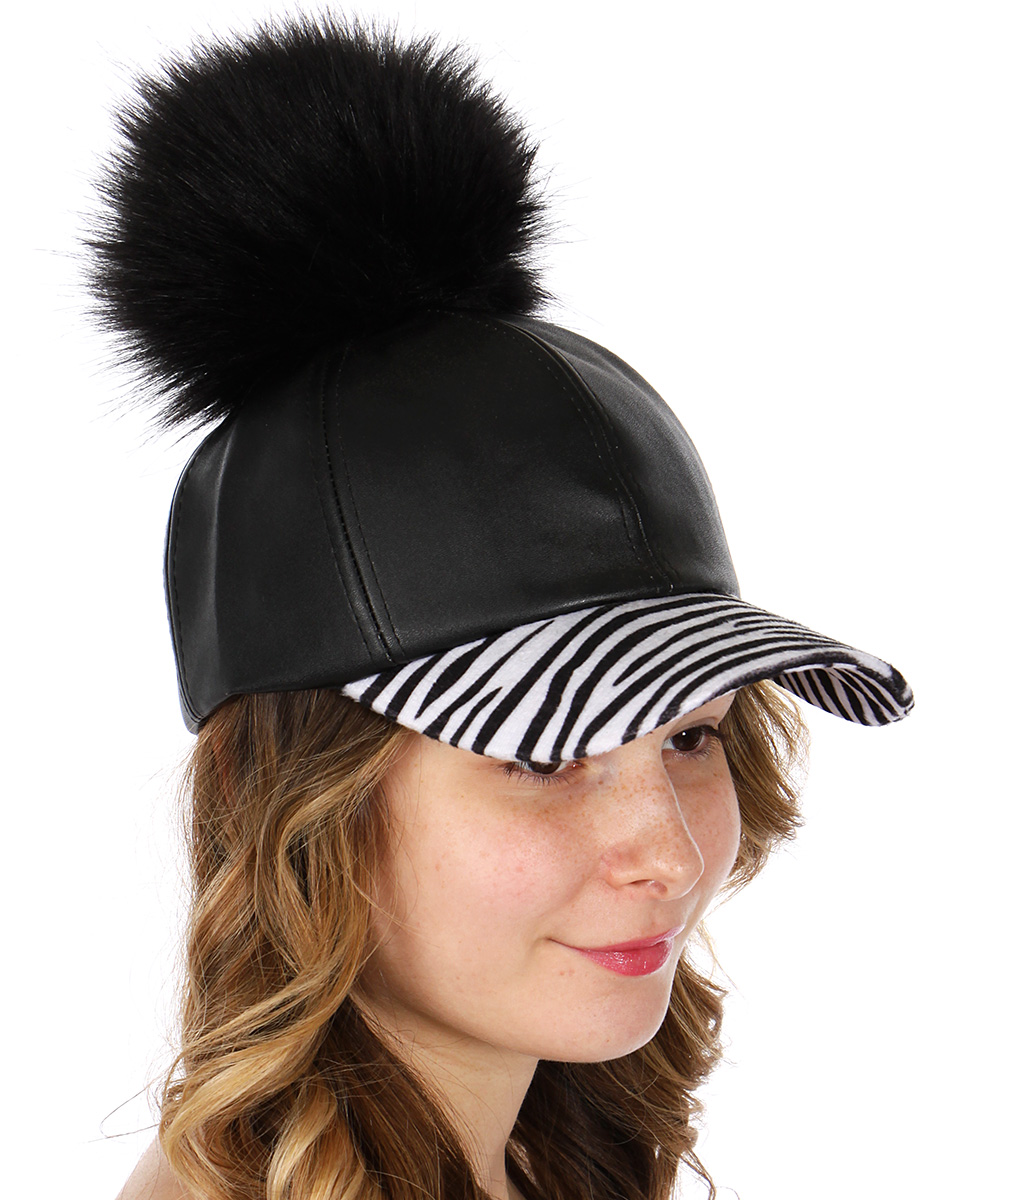 Q53C Faux leather BASEBALL CAP w/ zebra visor & faux fur pompom BKZEB